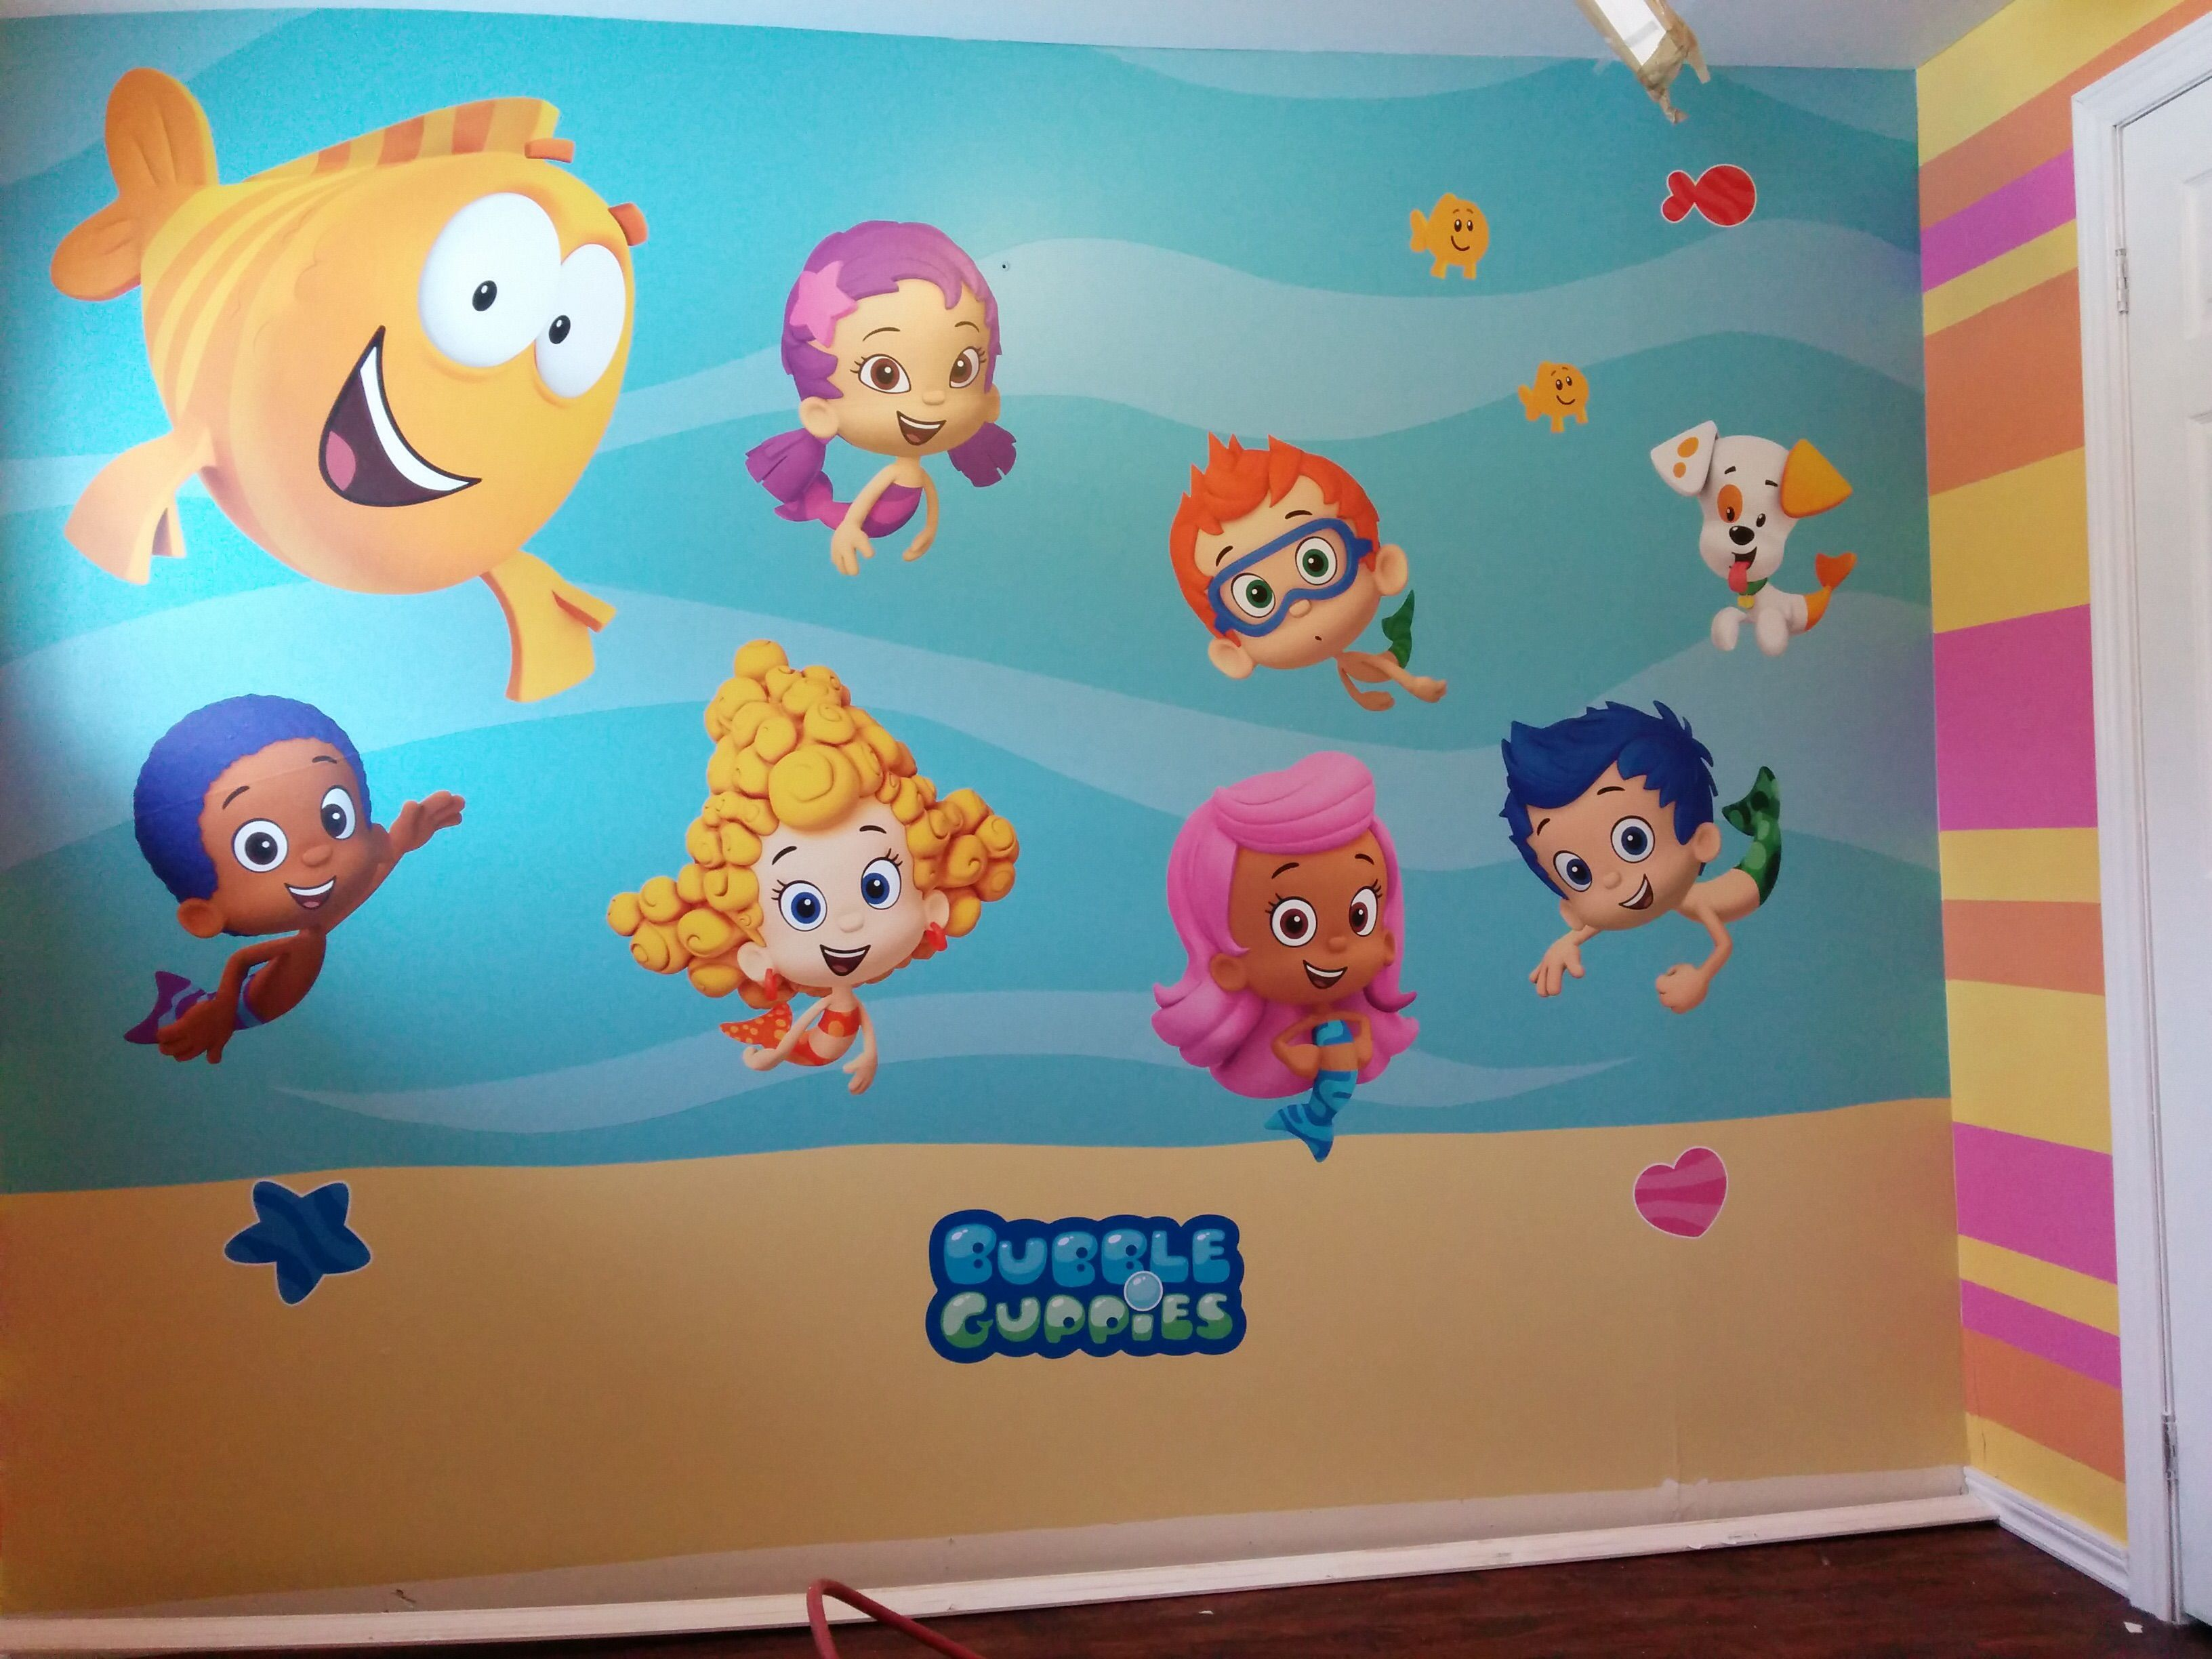 Bubble guppies mural painted background and wall decals for the bubble guppies mural painted background and wall decals amipublicfo Images